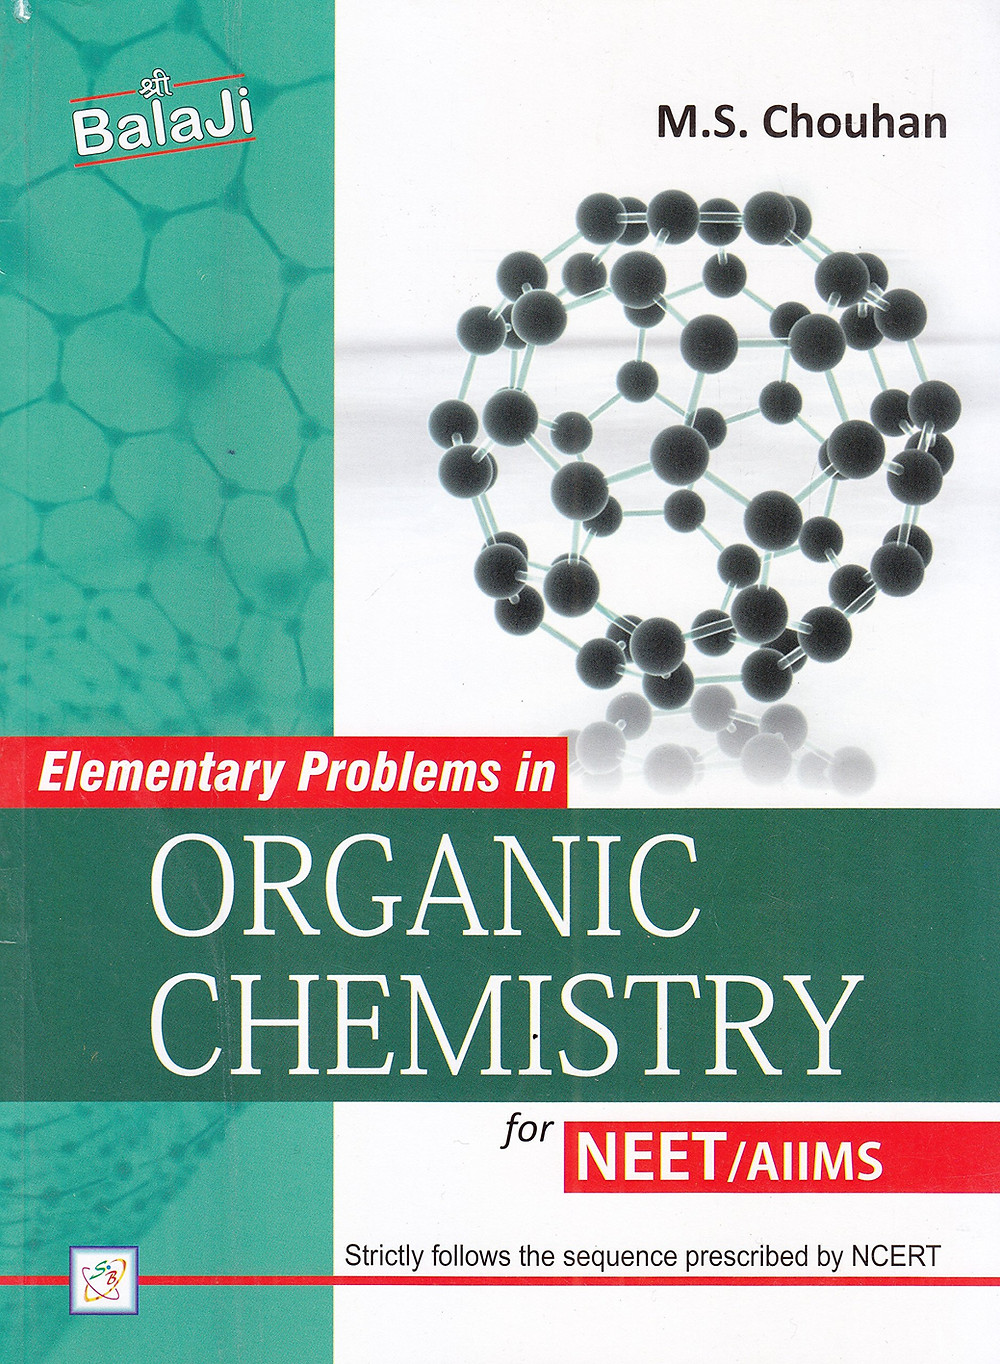 ms chauhan pdf download | ms chauhan organic chemistry pdf download